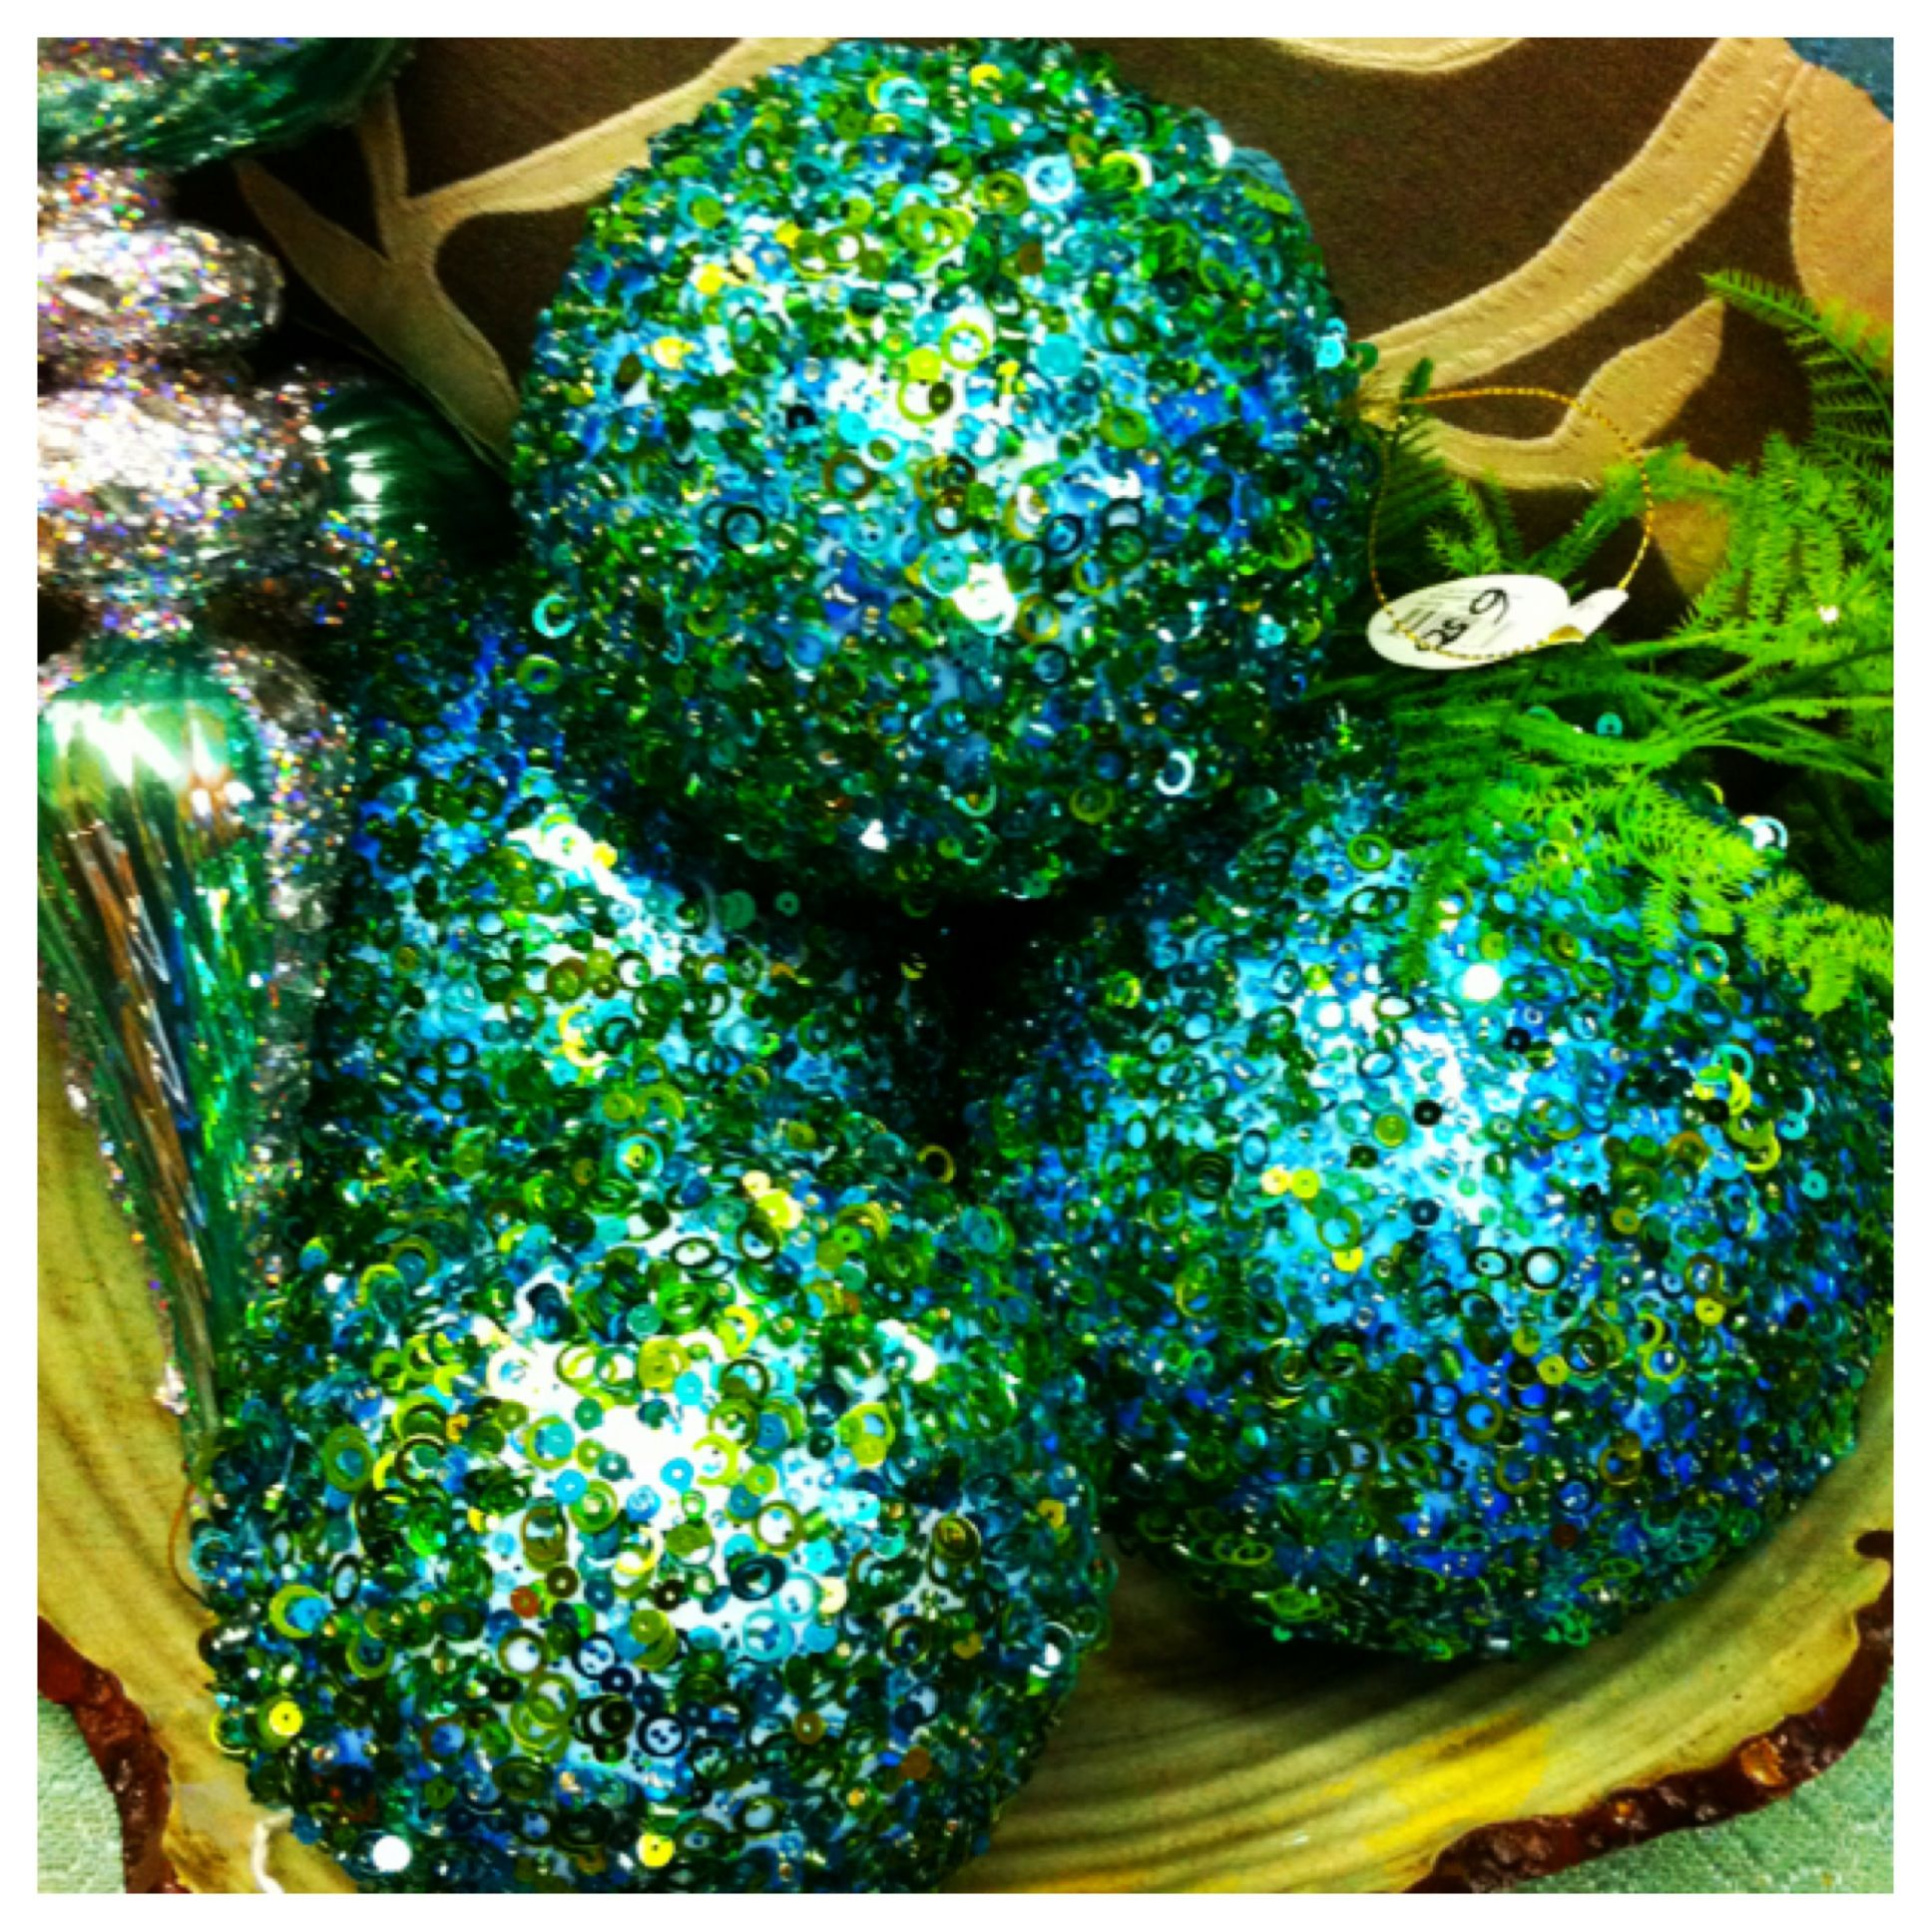 How To Decorate Polystyrene Balls Use Beads Glitter And Sequins To Decorate Styrofoam Balls As